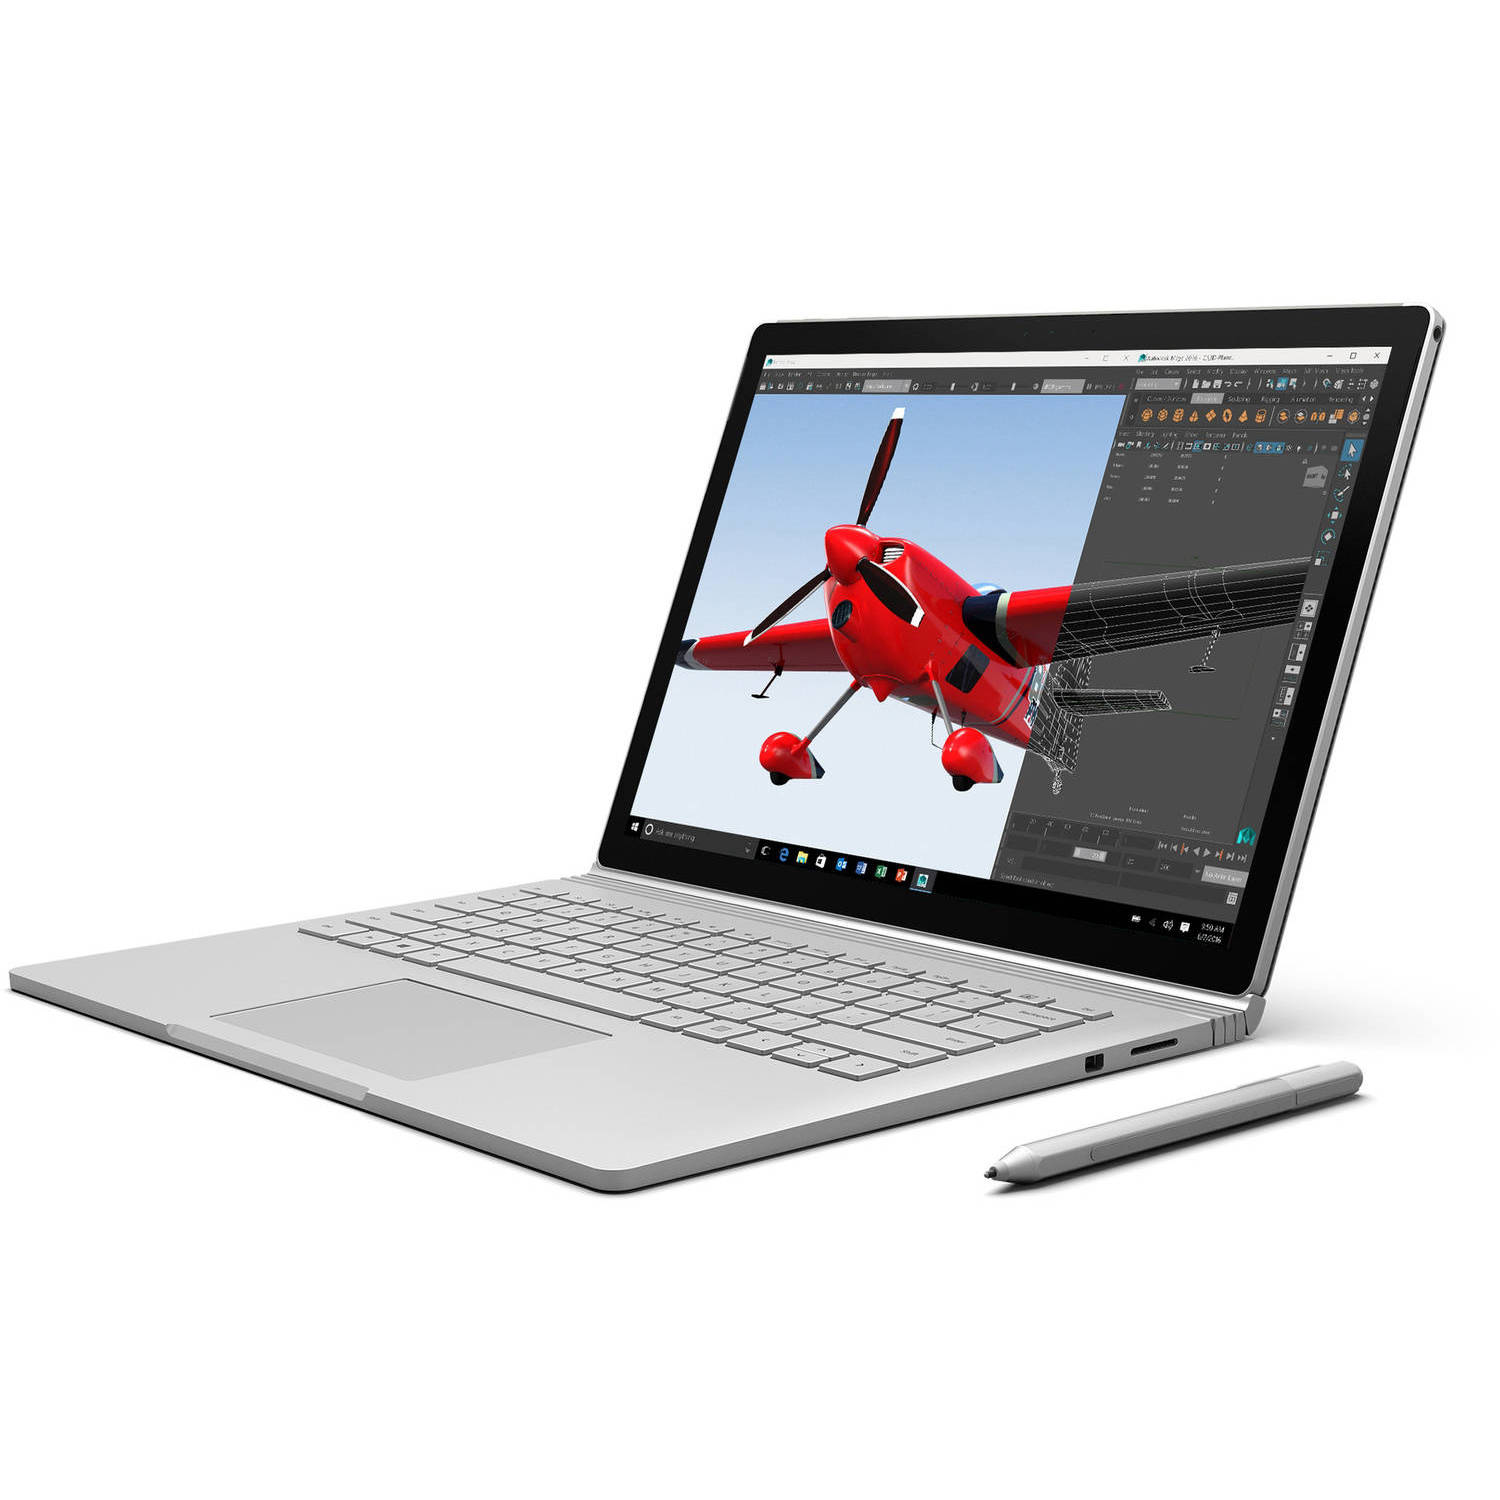 "Microsoft Surface Book13.5"" 8GB/ 128GB Intel Core i5 processor Windows 10 Pro"